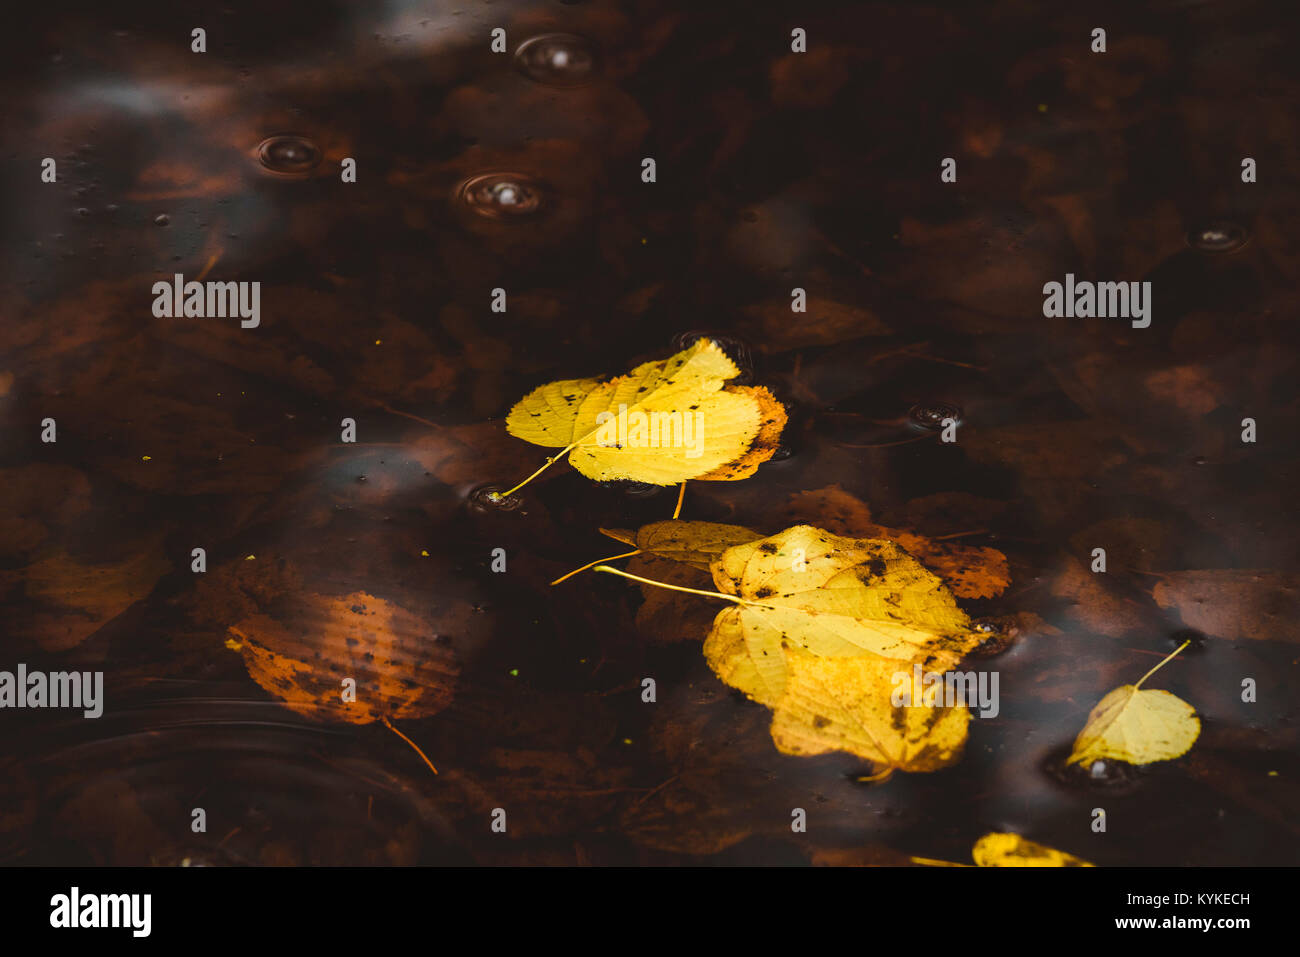 Yellow autumn leaves in the dark water in the fall floating in a puddle - Stock Image